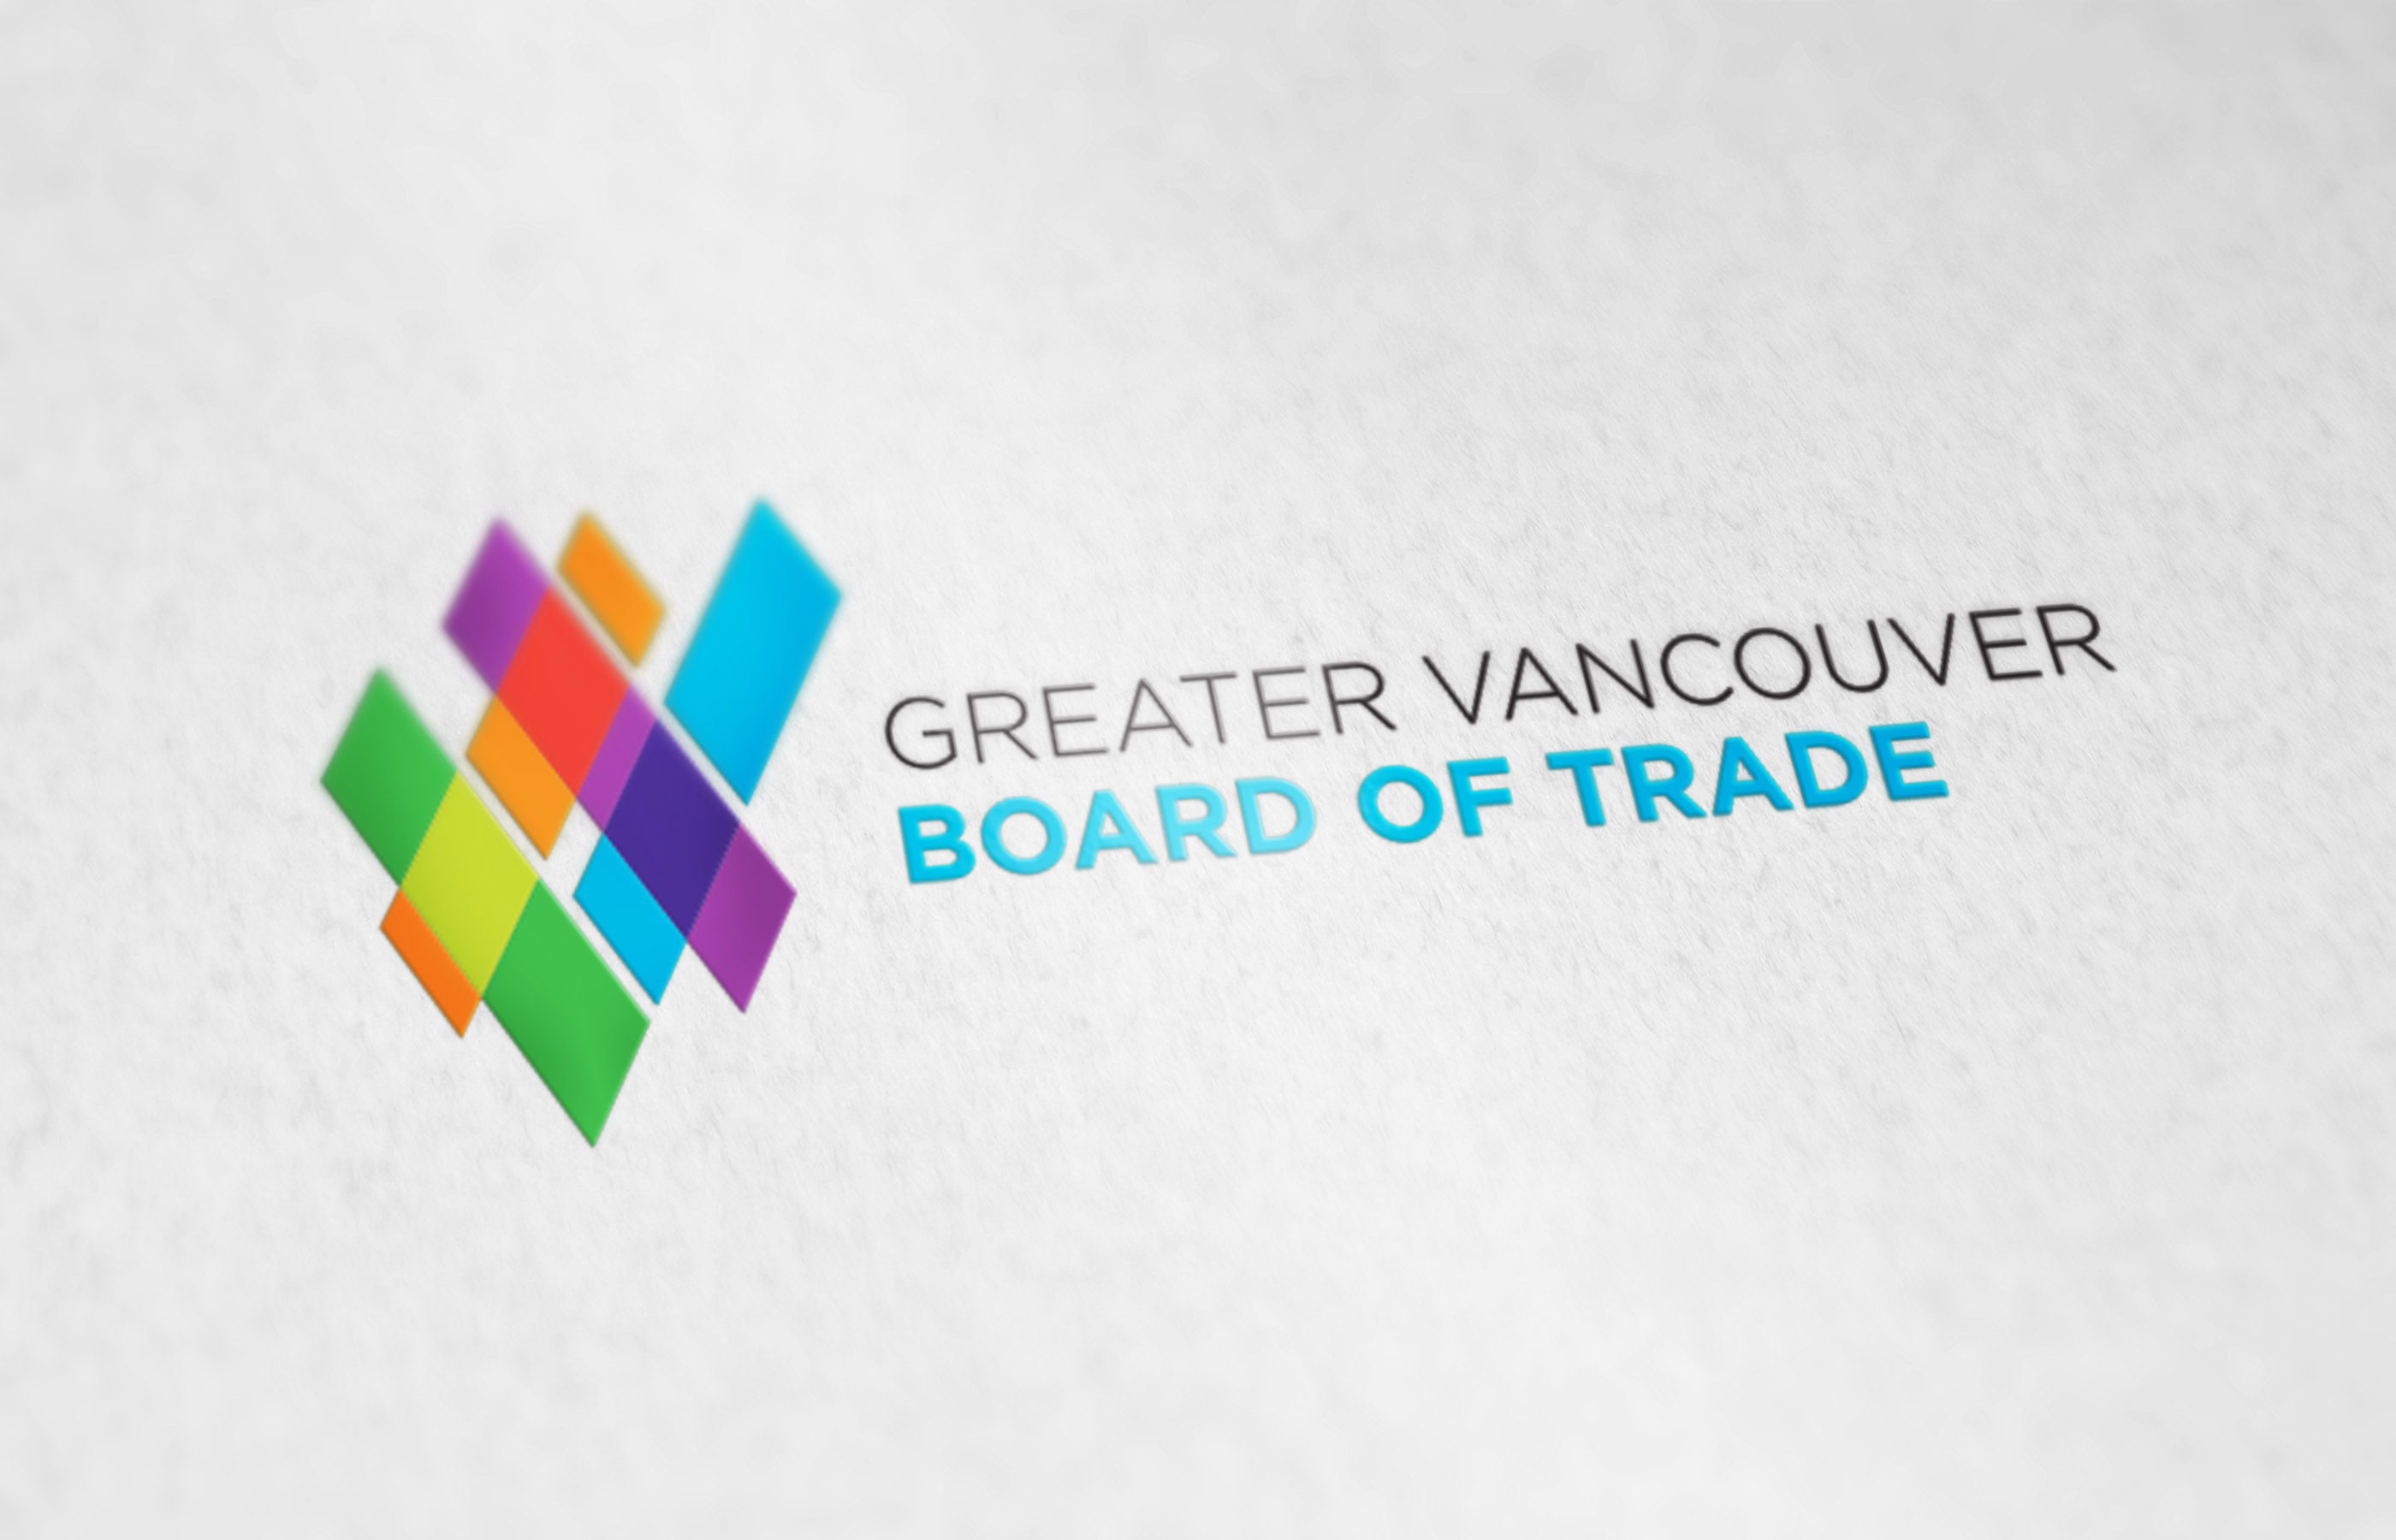 Greater Vancouver Board of Trade - Branding Sample 1